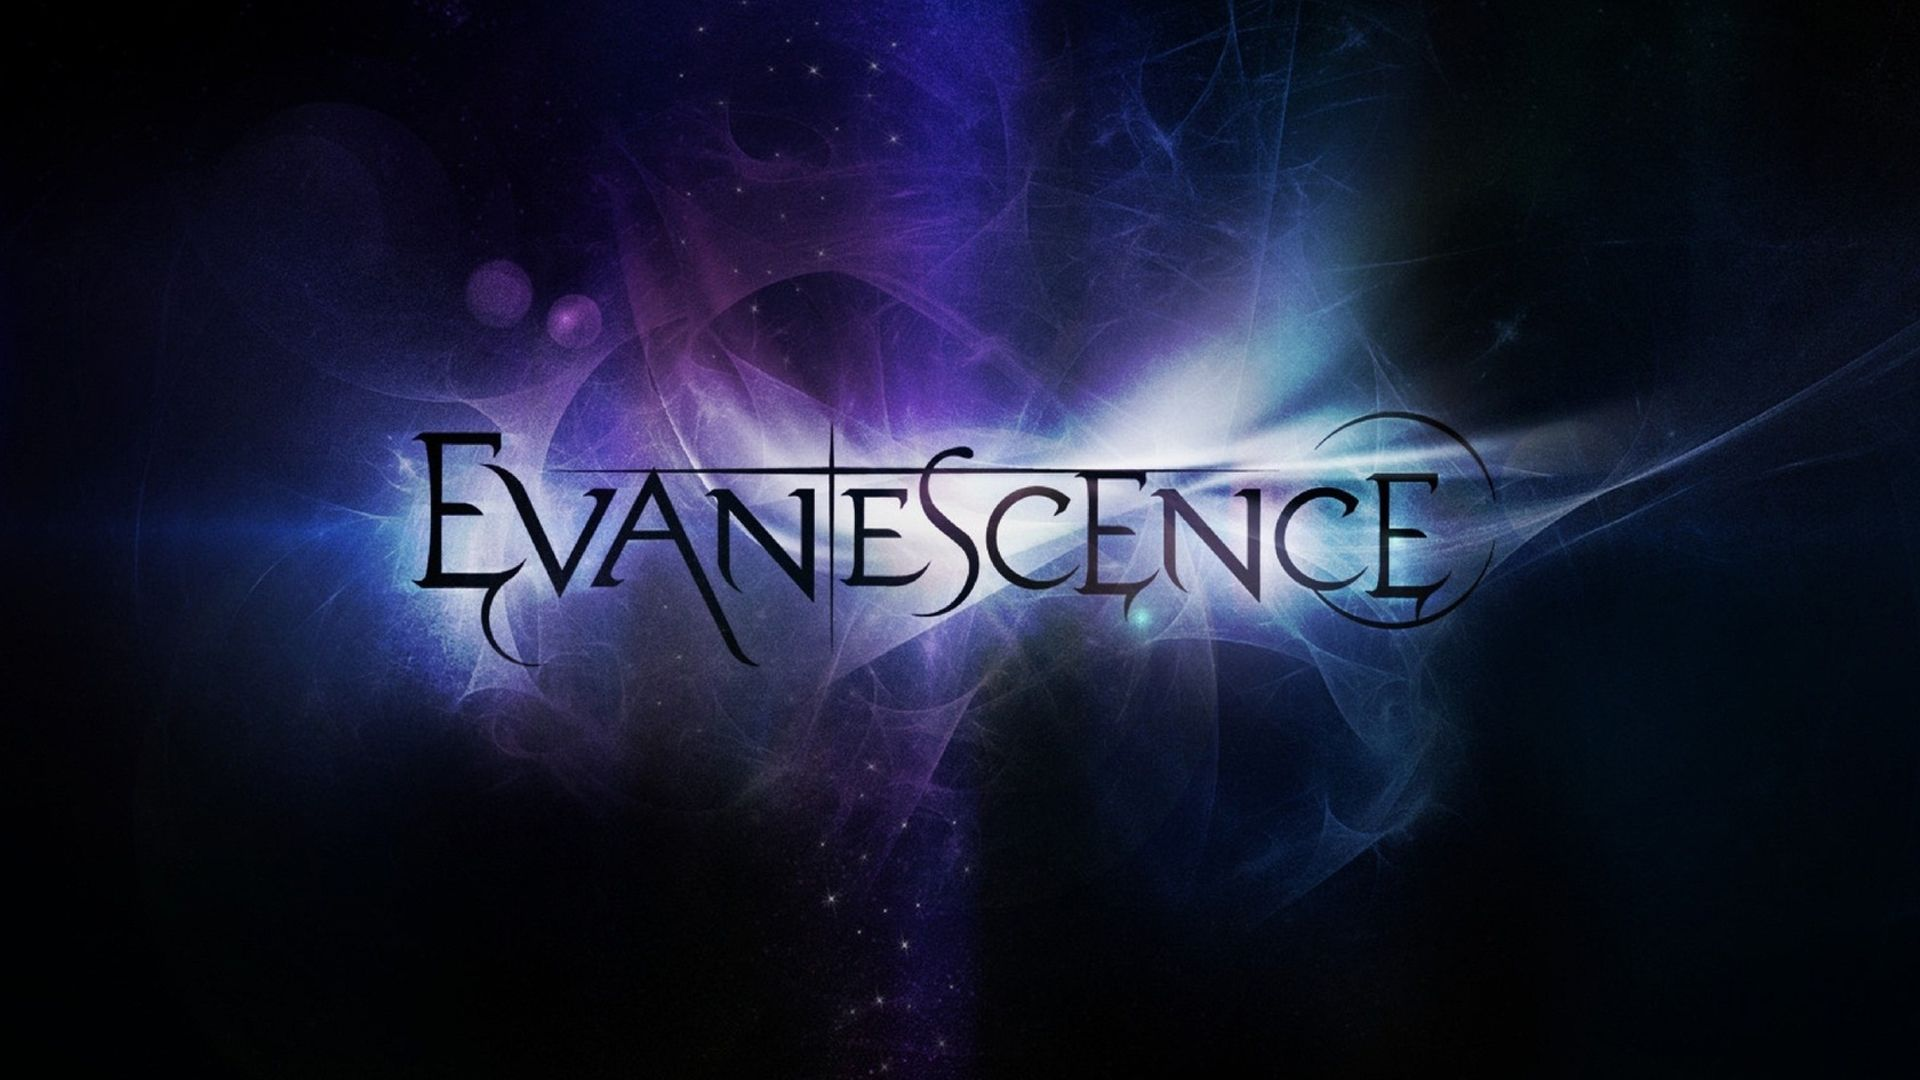 Evanescence Logo High Definition Wallpapers Hd Wallpapers Evanescence Bring Me To Life Evanescence Lyrics